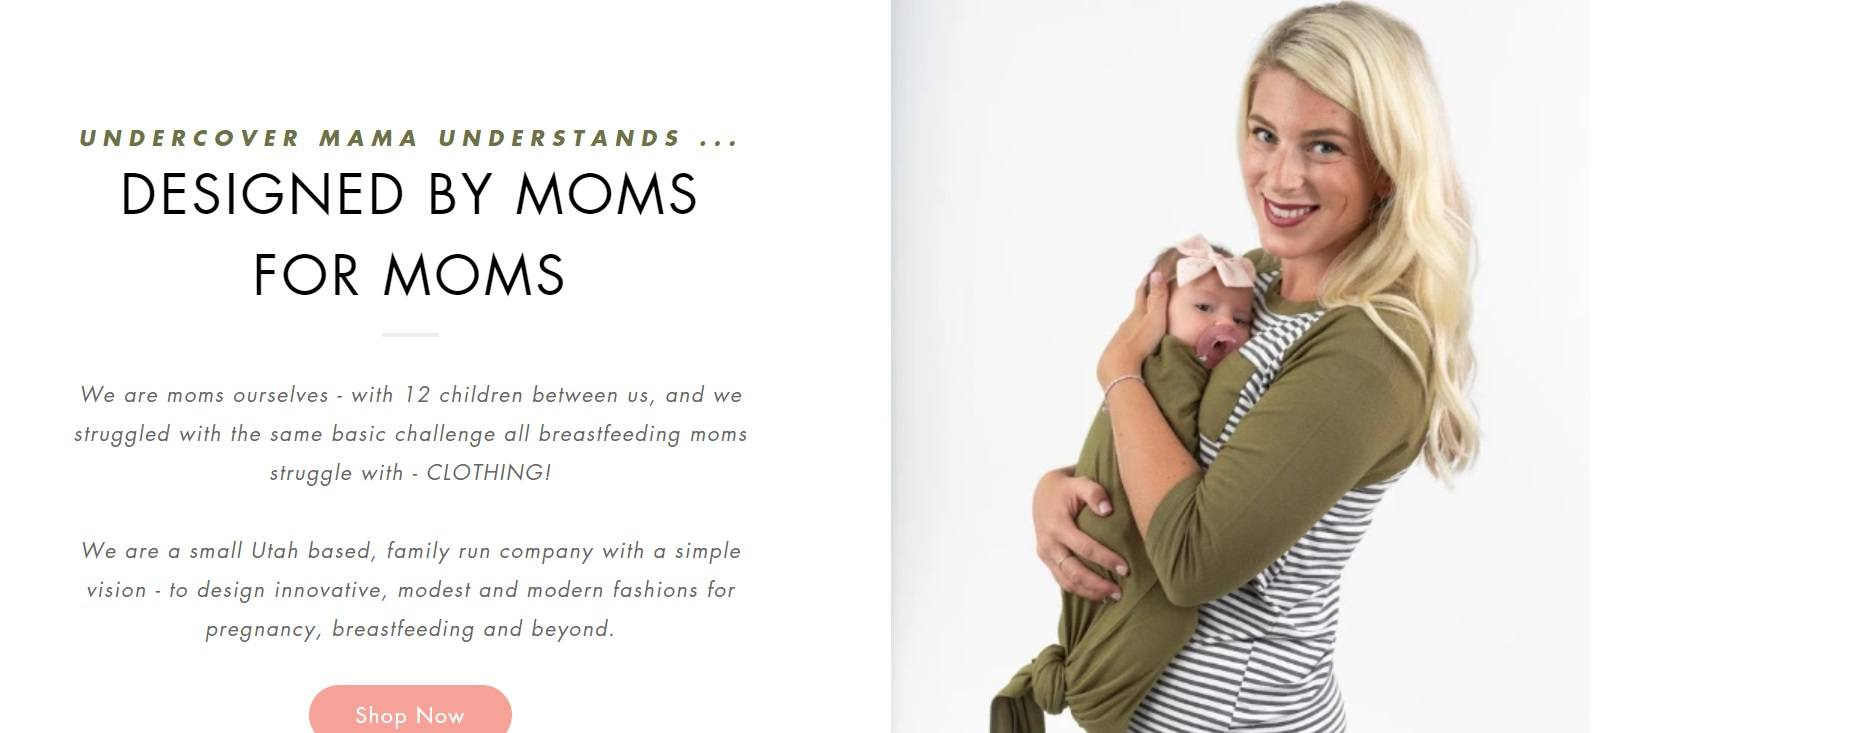 Undercover Mama - Designed By Moms For Moms